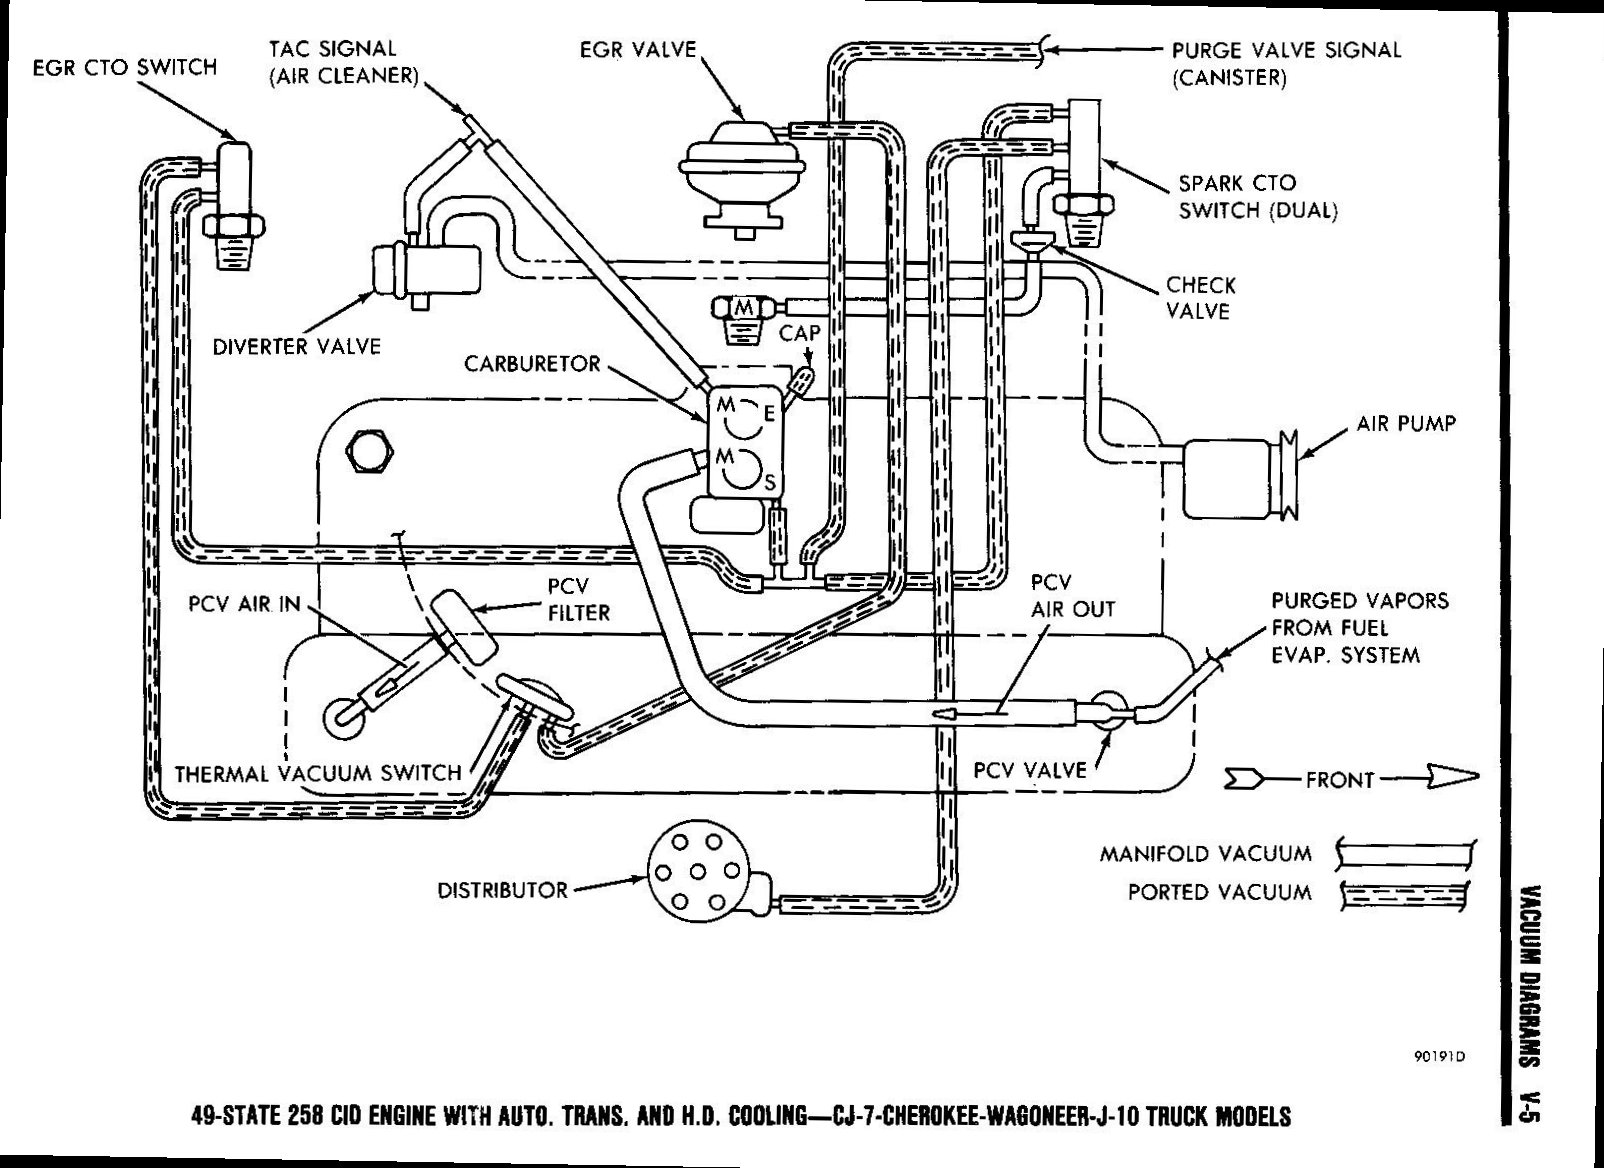 hight resolution of 86 cj7 carburetor diagram simple wiring diagrams rh 44 studio011 de 1985 jeep cj7 carburetor diagram 1986 jeep cj7 carburetor